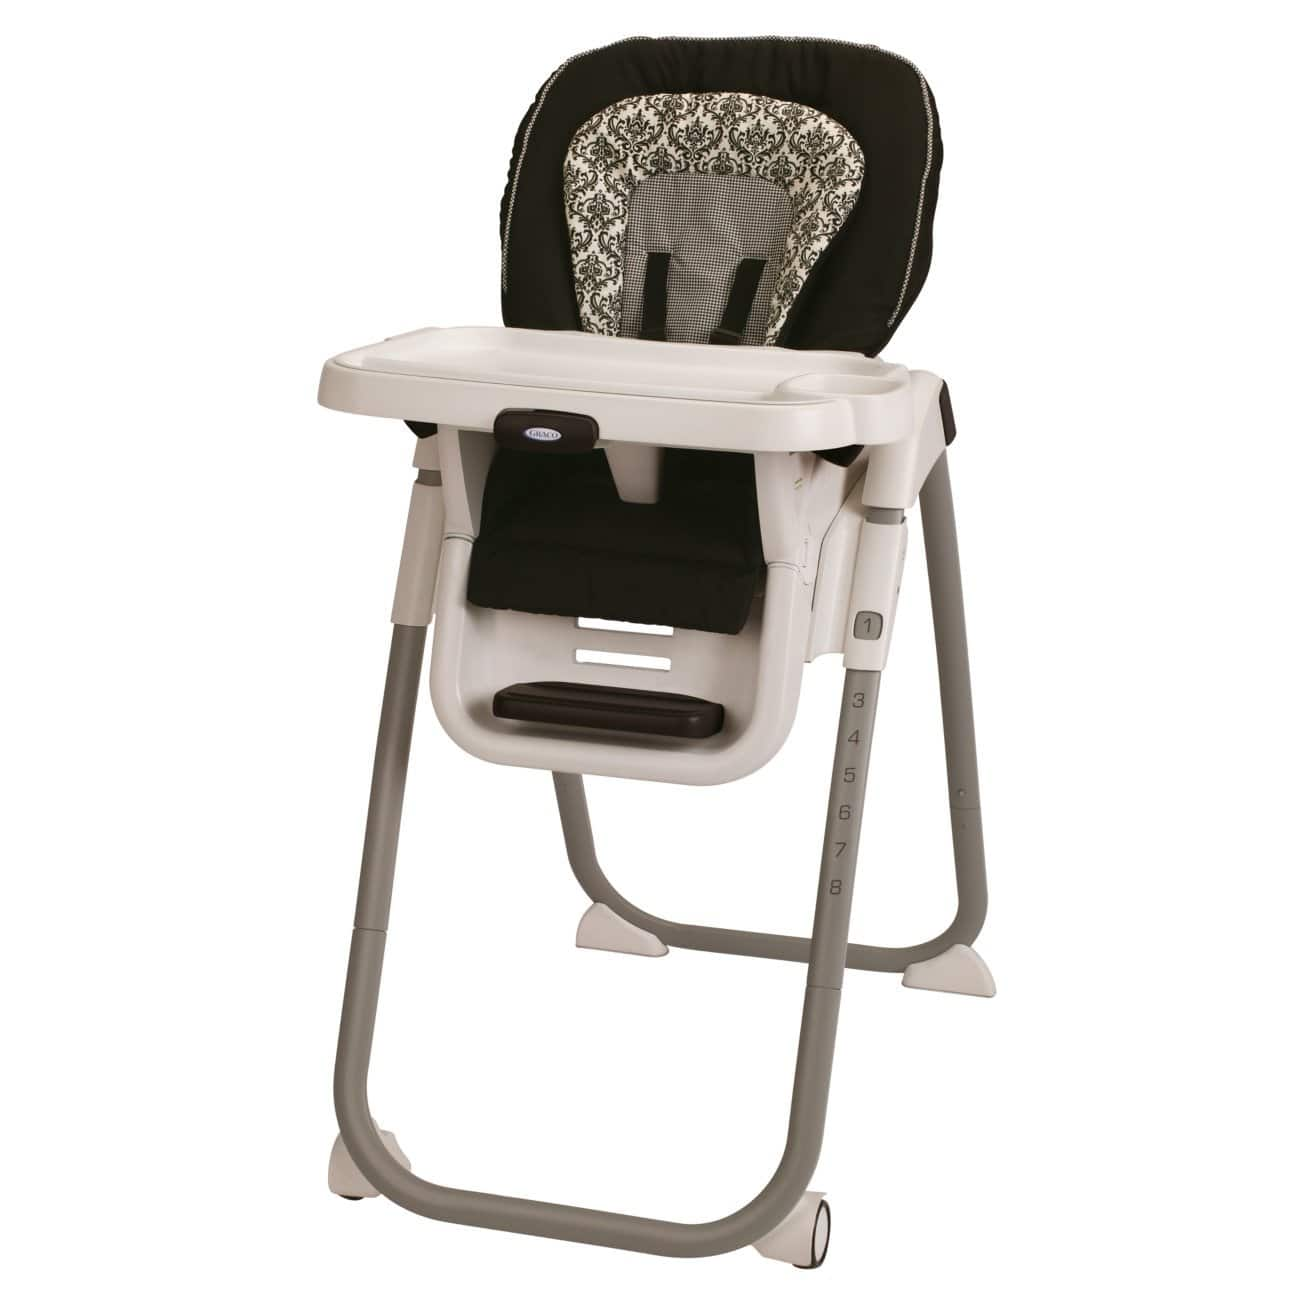 Graco Tablefit High Chair Rittenhouse For 49 96 At Walmart Or